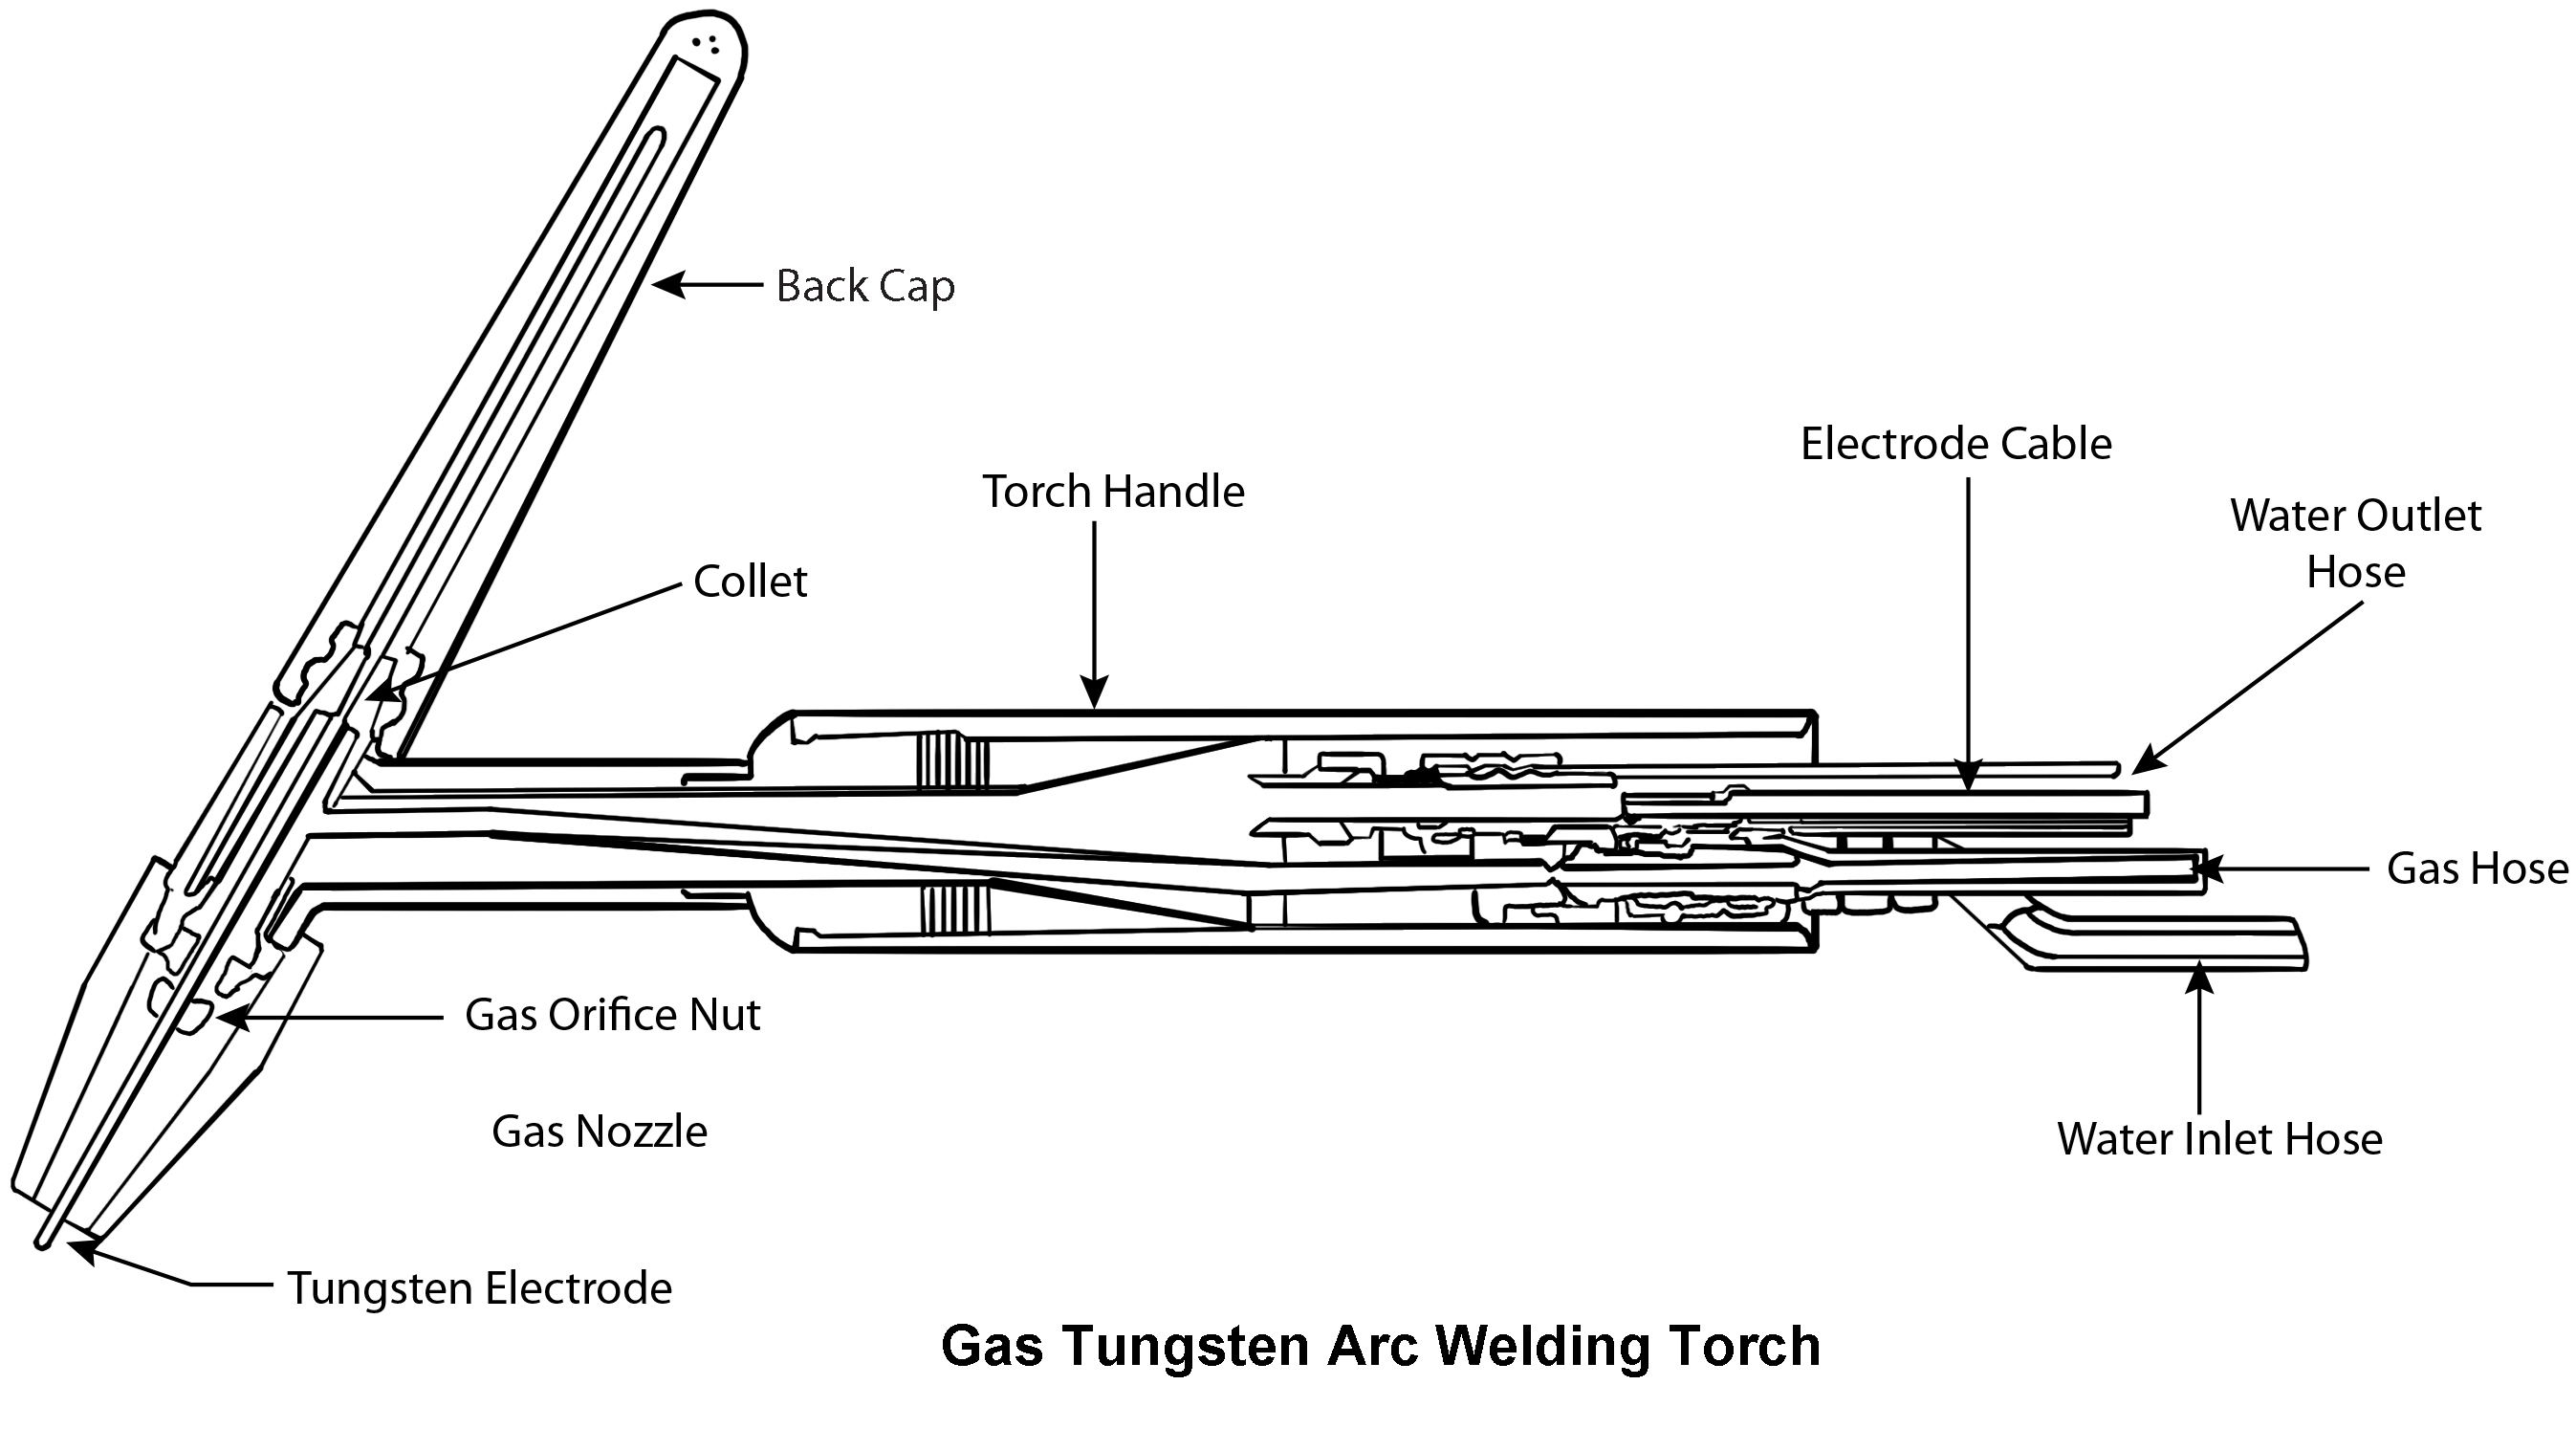 Tig Welding Torch Diagram - All Wiring Diagram on